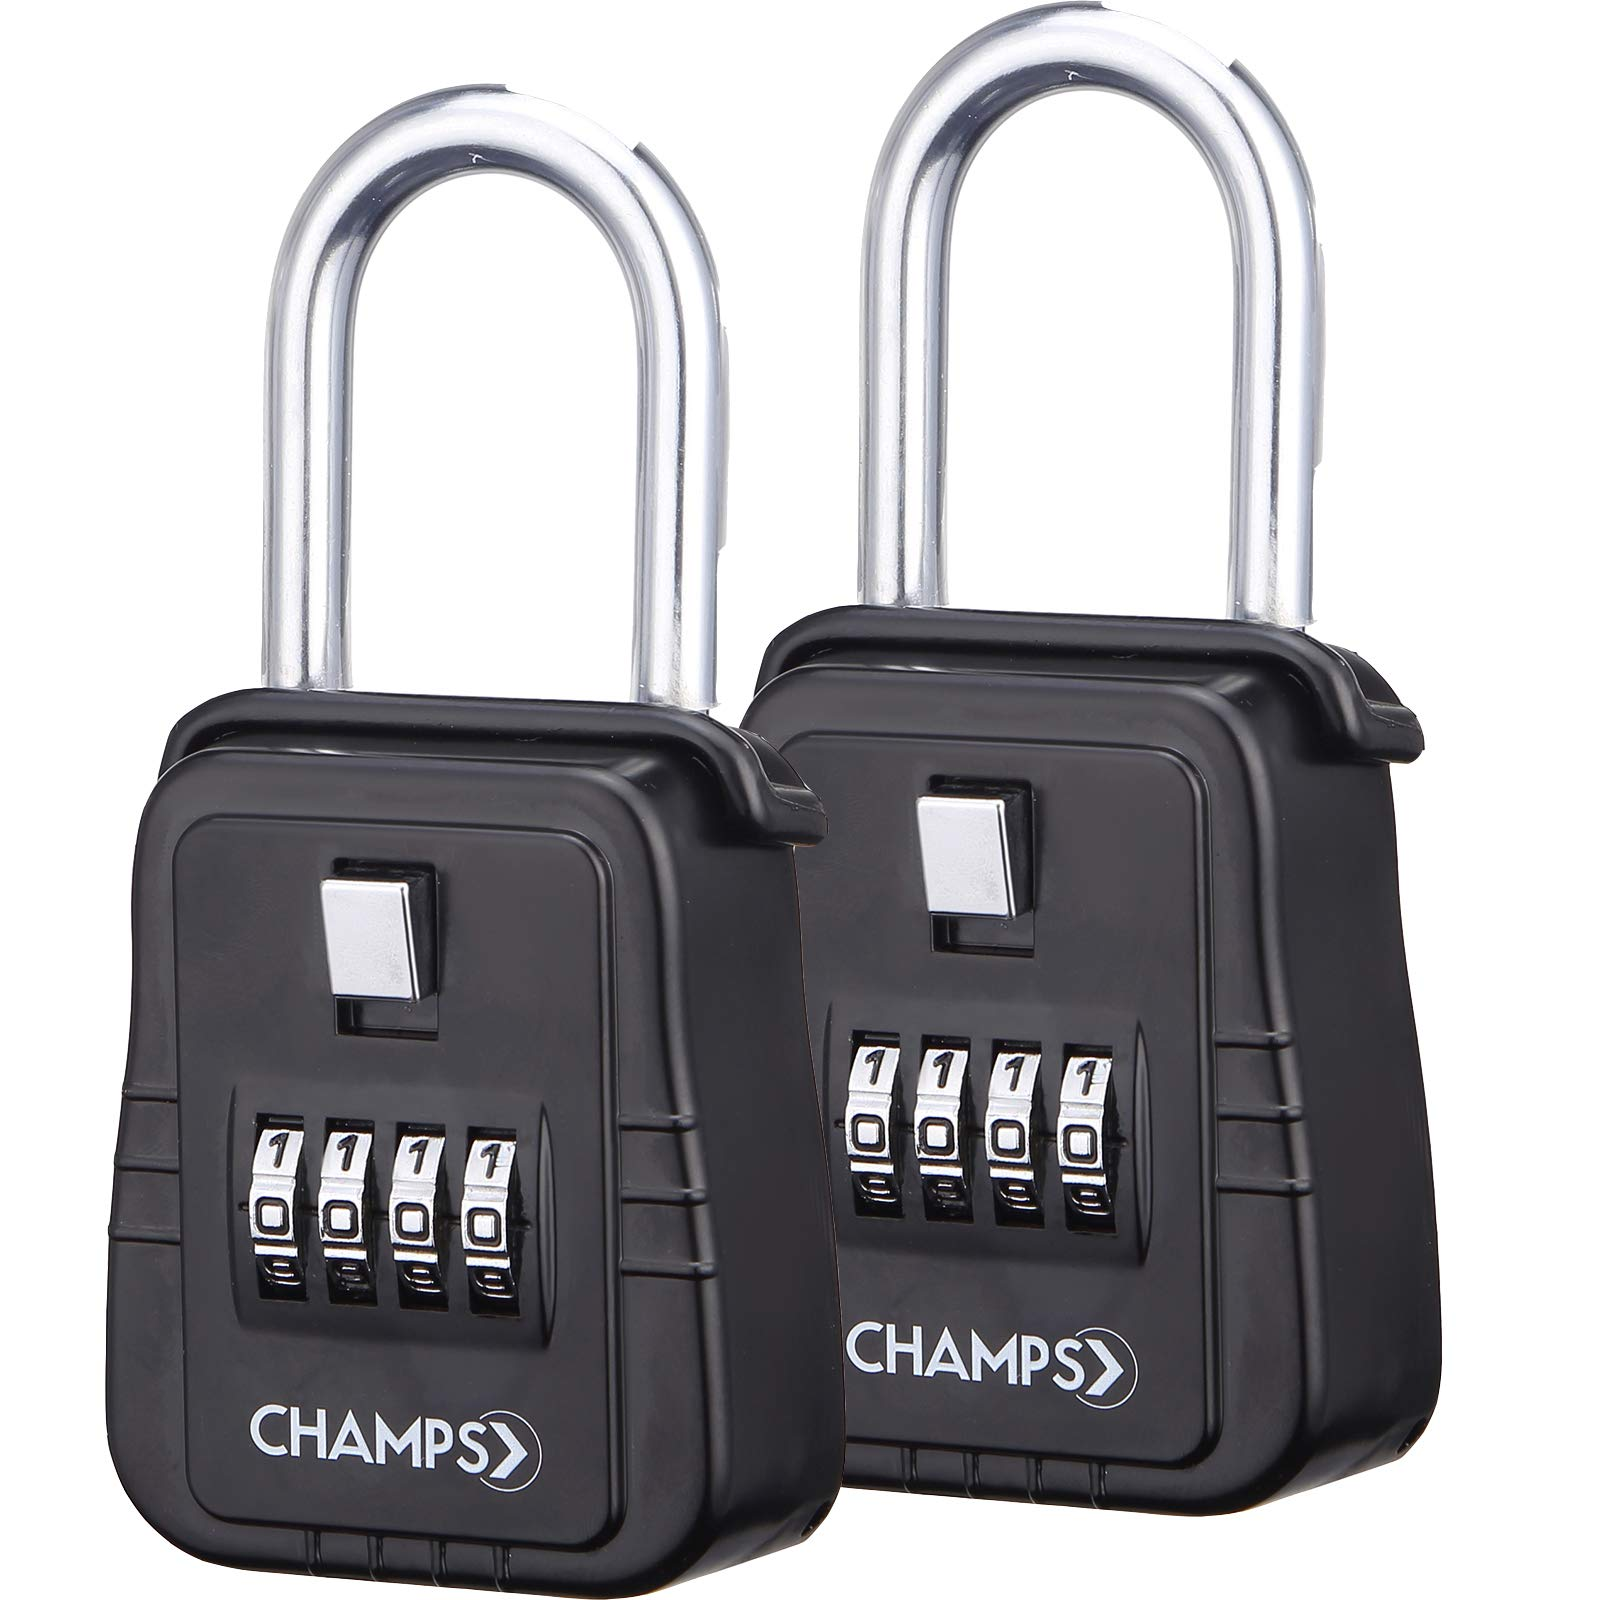 Champs Combination Realtor Lock, 4 Digit Comination Padlock, Real Estate Key Lock Box, Set-Your-Own Combination [2 Packs, Black]